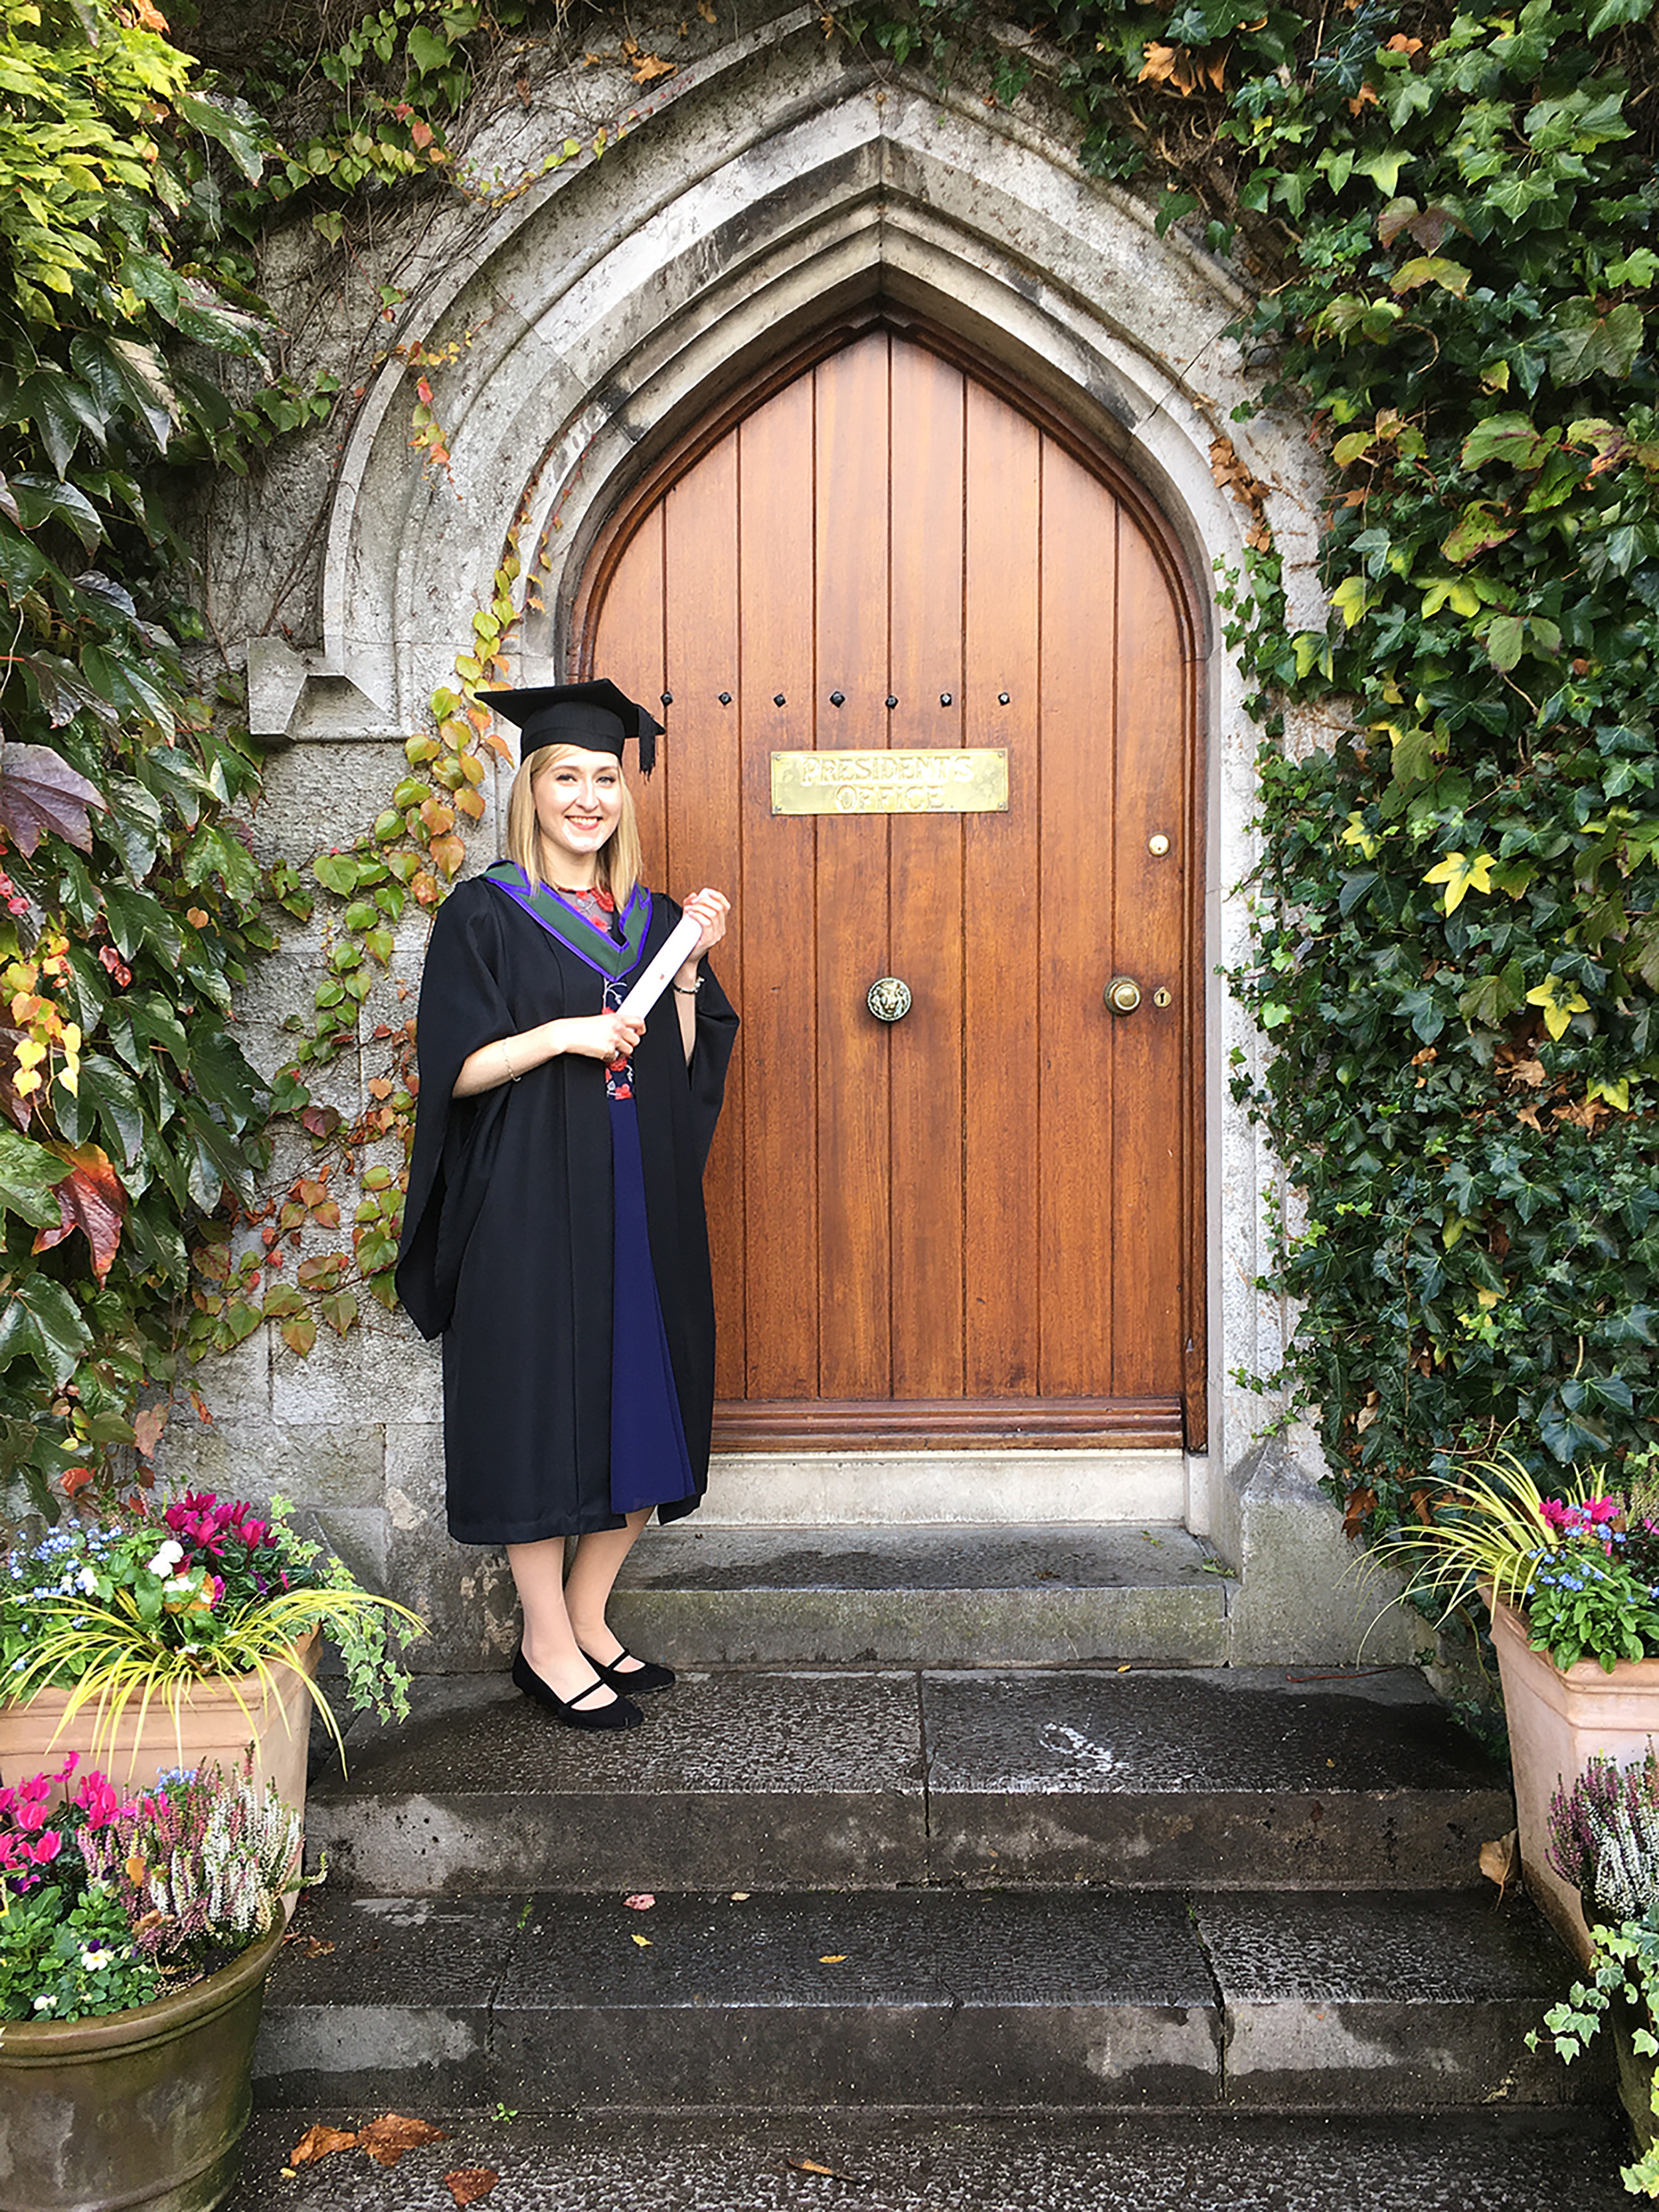 UCC School of Law graduate wins prestigious French Government Medal and NUI Prize